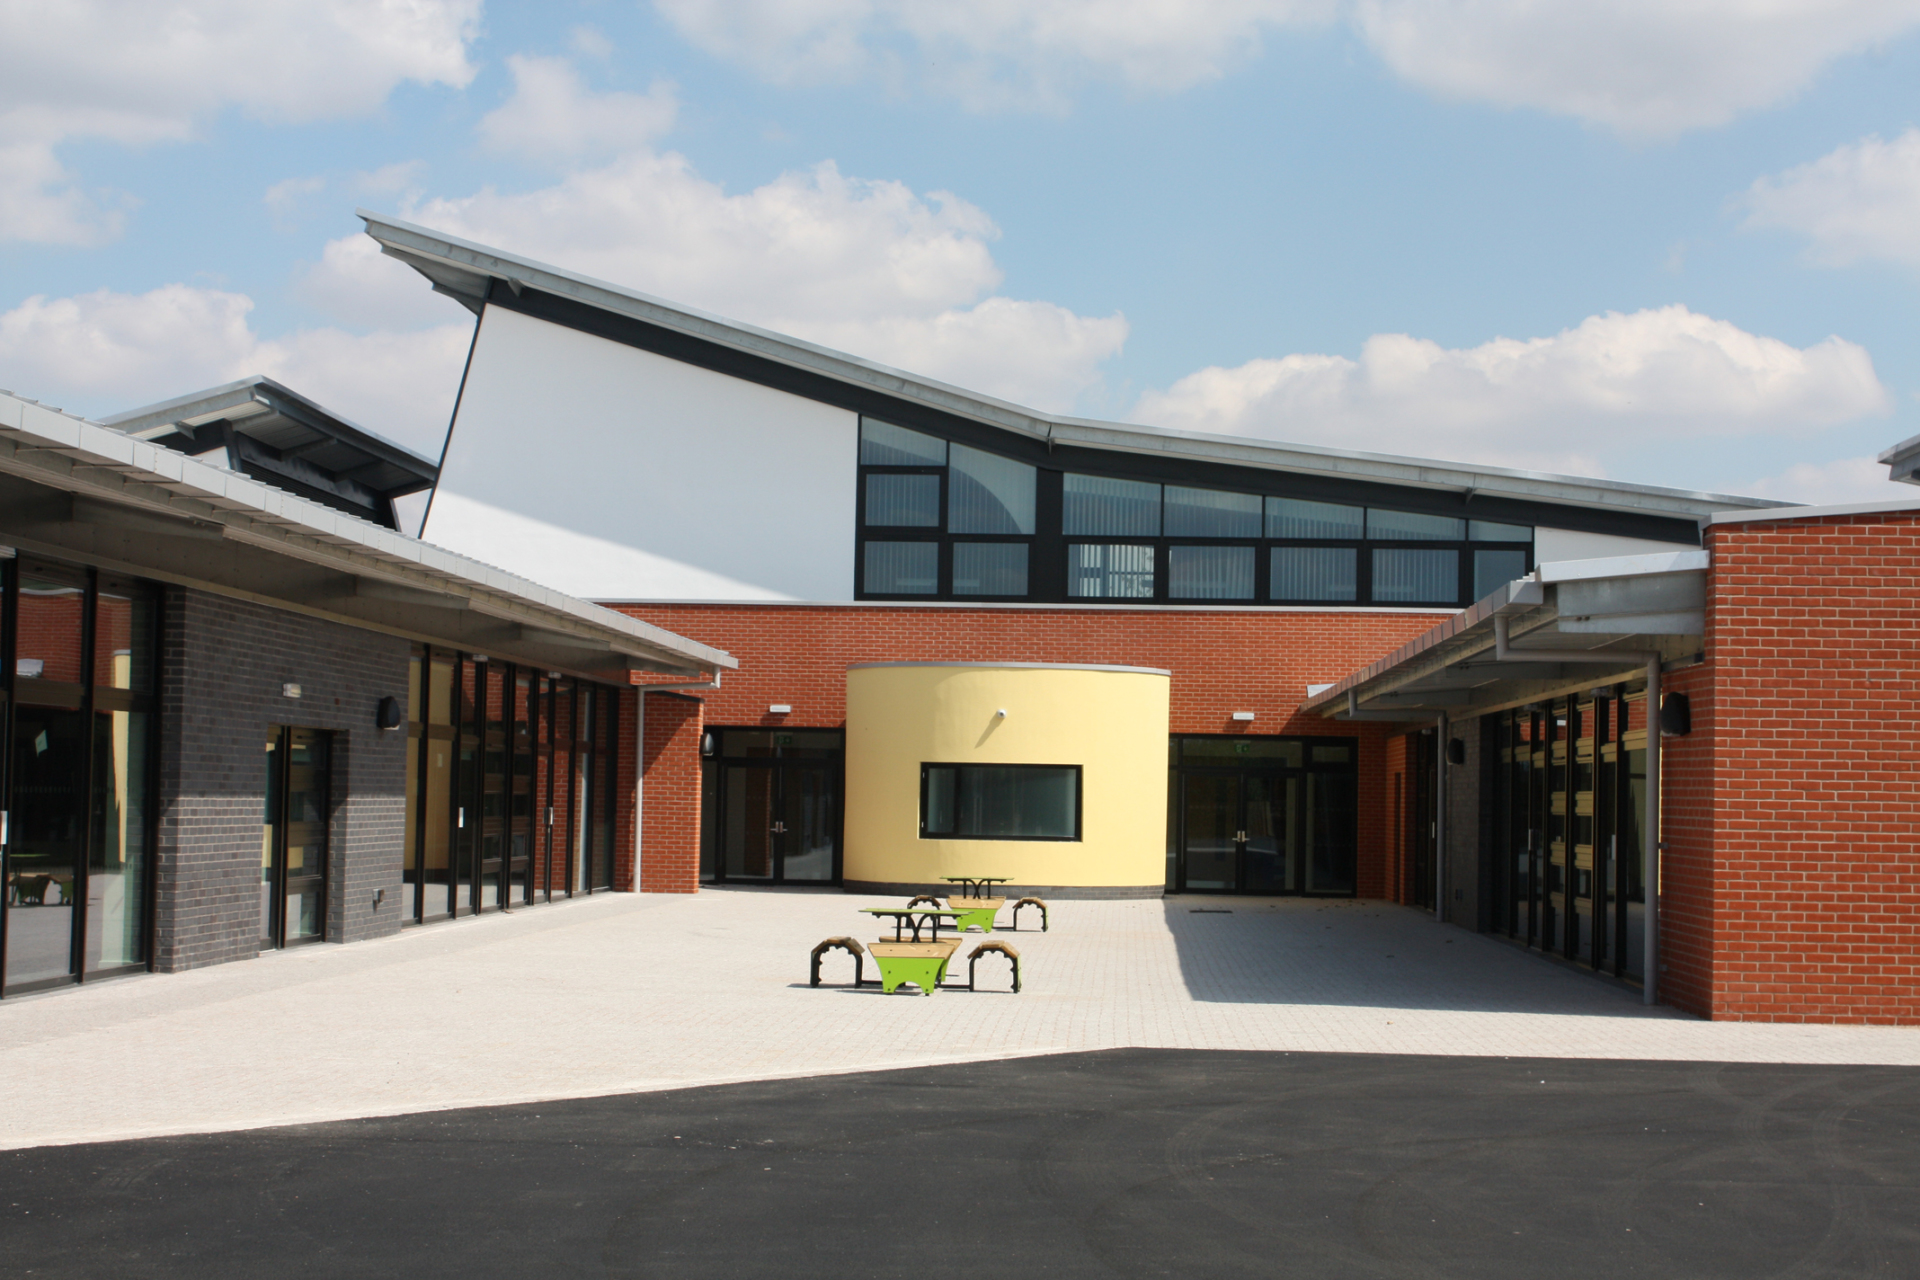 Coleshill Heath School (Solihull) by Contemporary and Modern architects Baart Harries Newall (BHN architects) based in Shrewsbury.